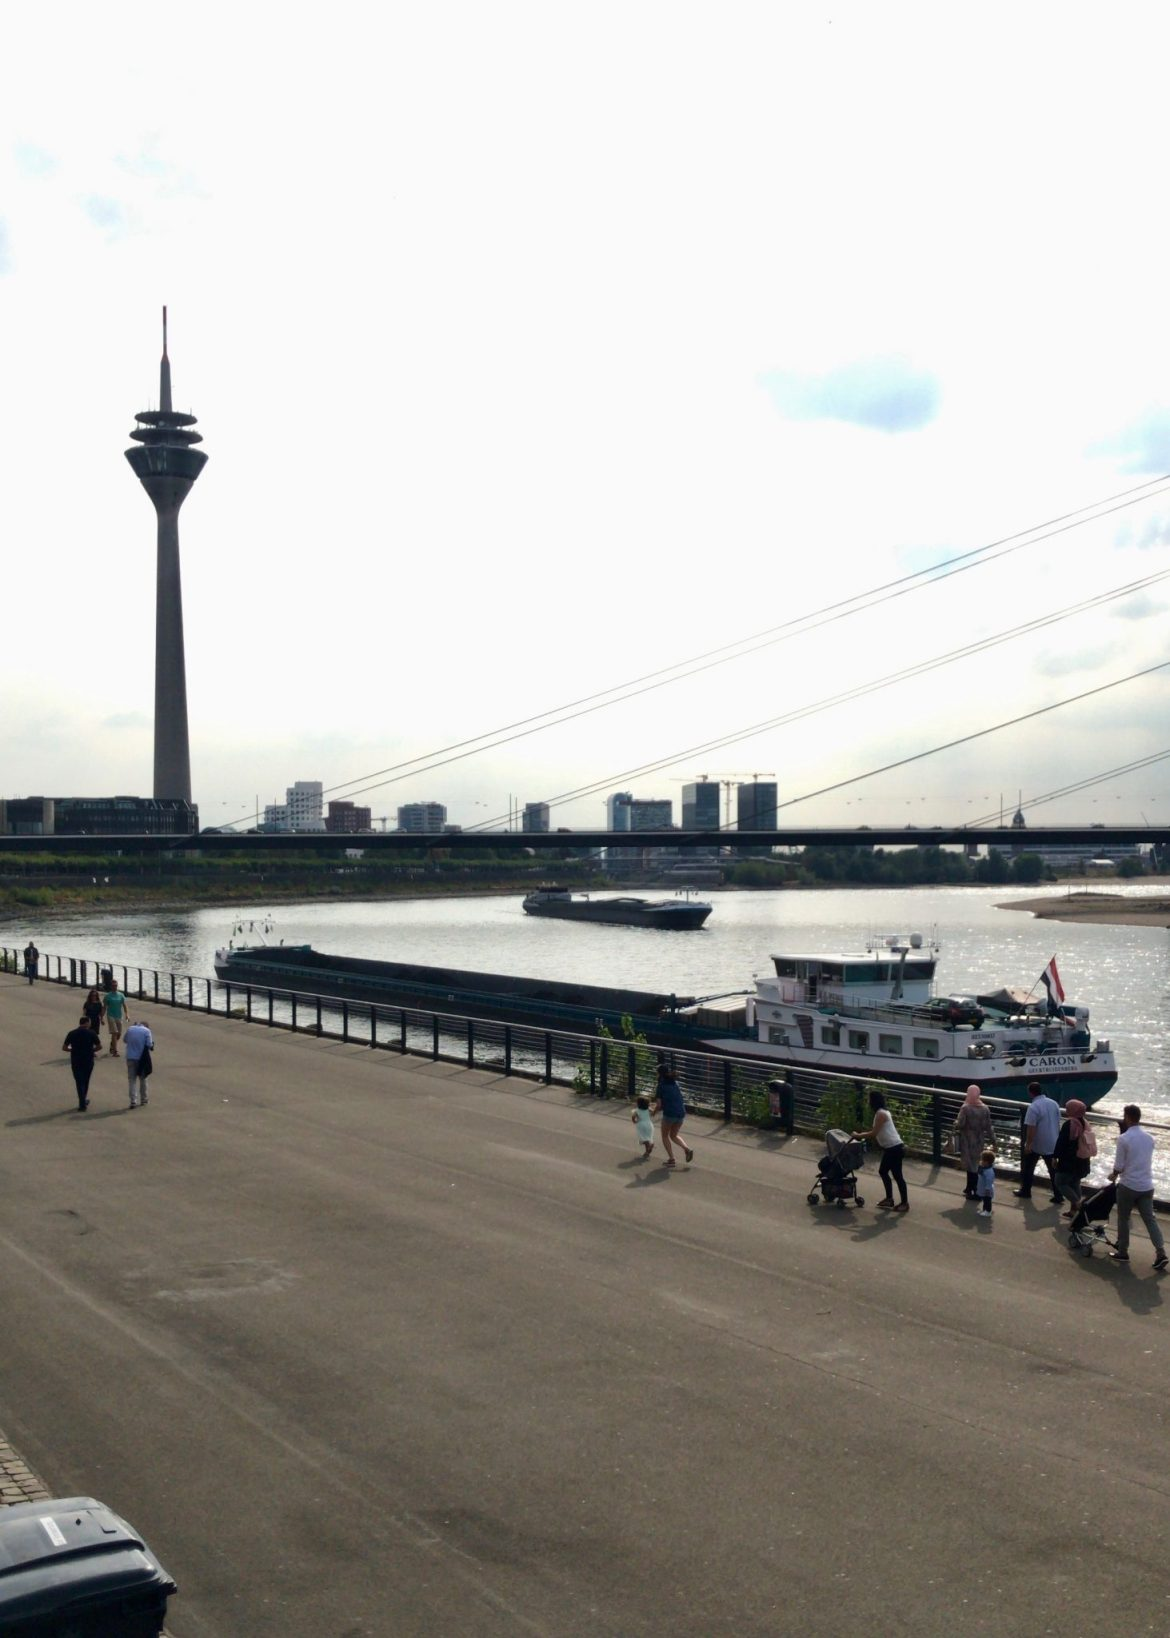 River view of the Rheinturm, Düsseldorf